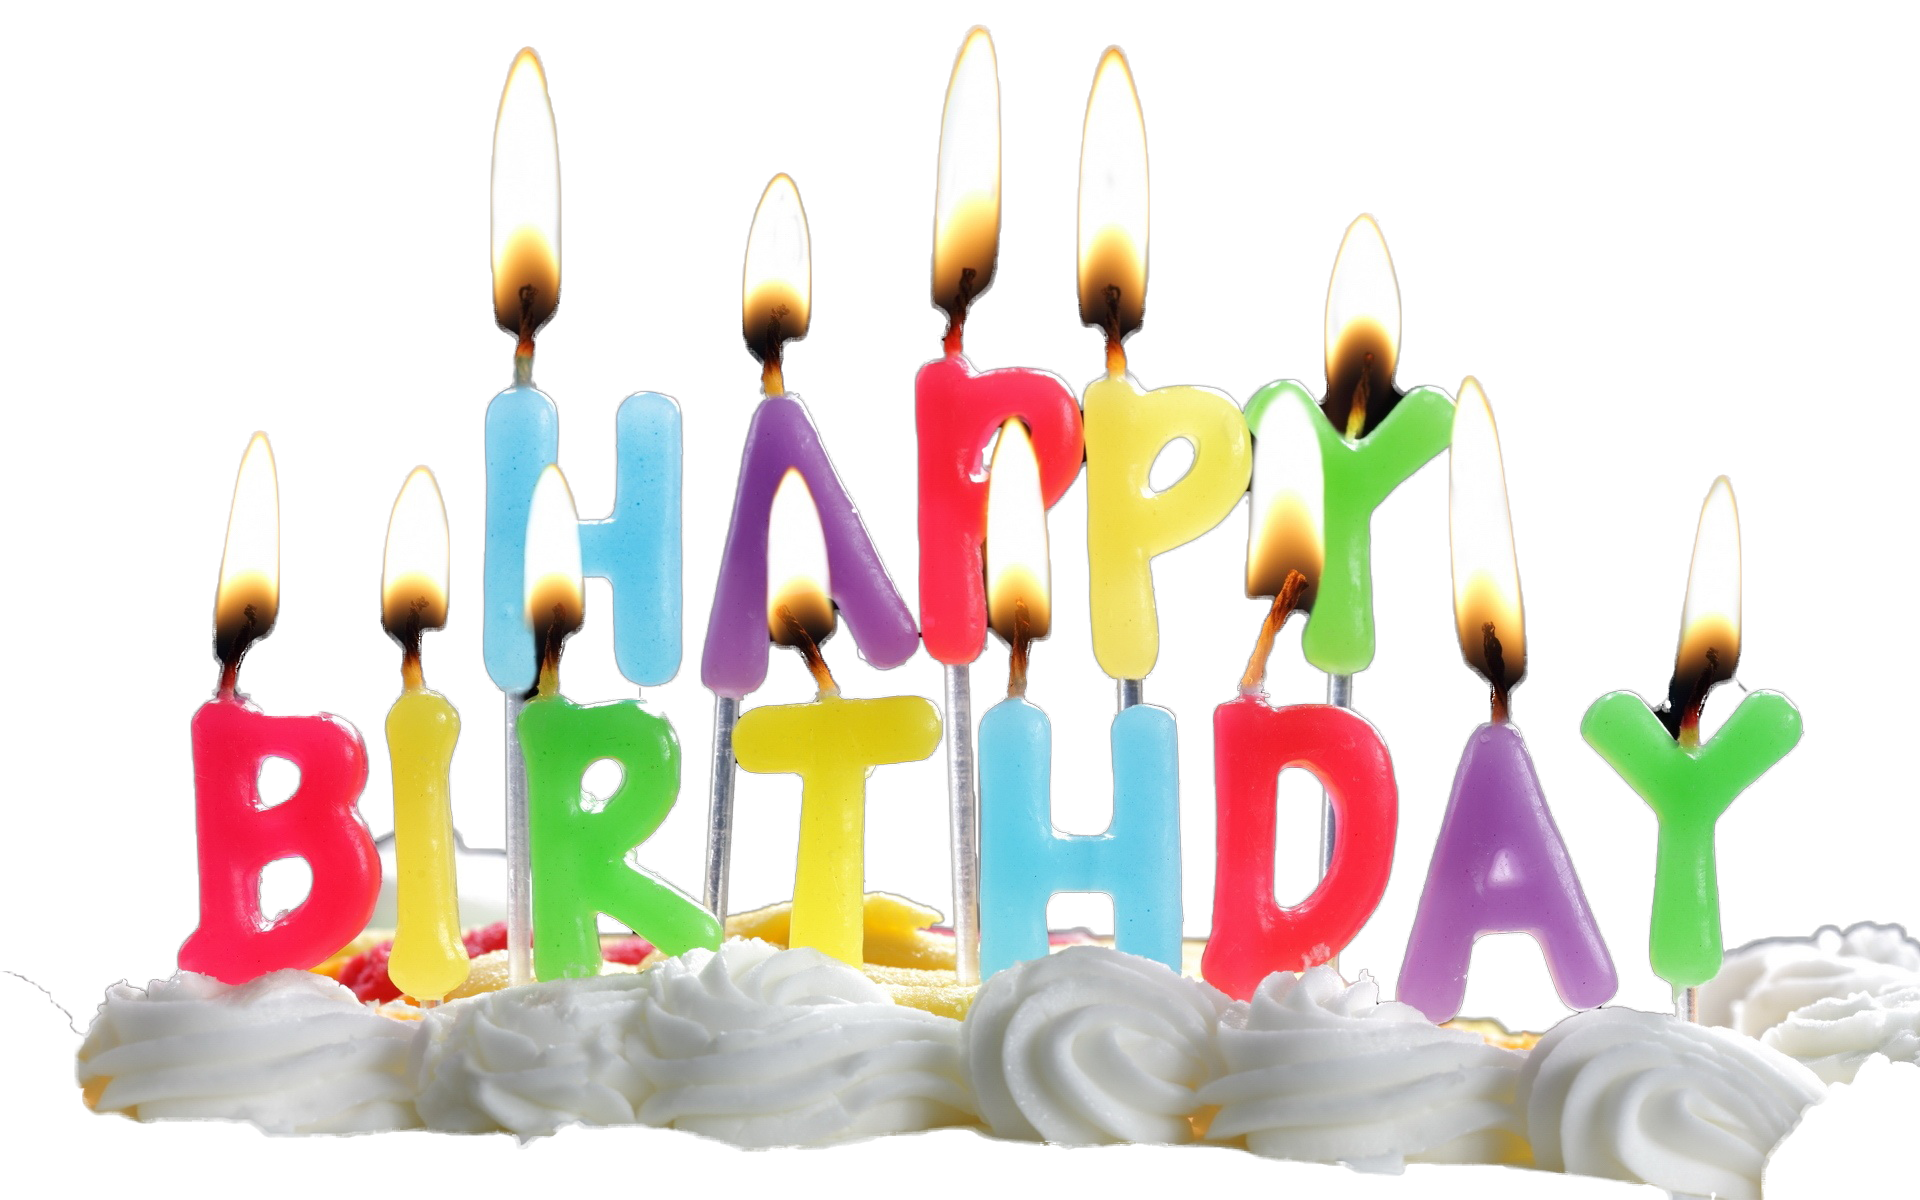 Birthday Candles Transparent Png Image - Birthday Candles, Transparent background PNG HD thumbnail